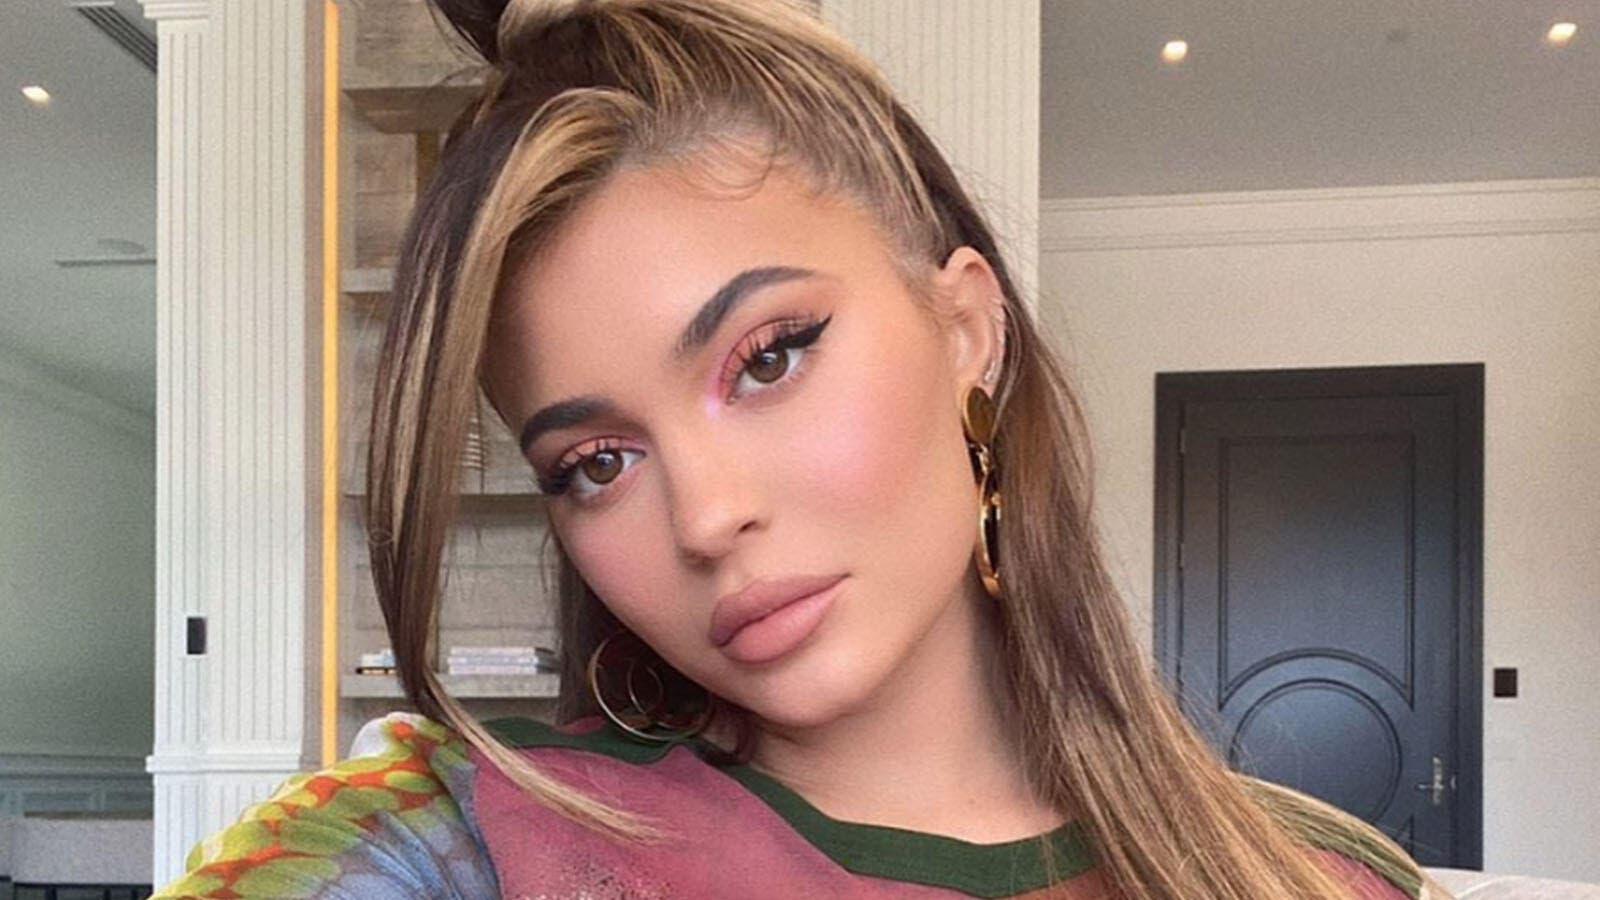 Kylie Jenners Instagram post leads to a surge in voting